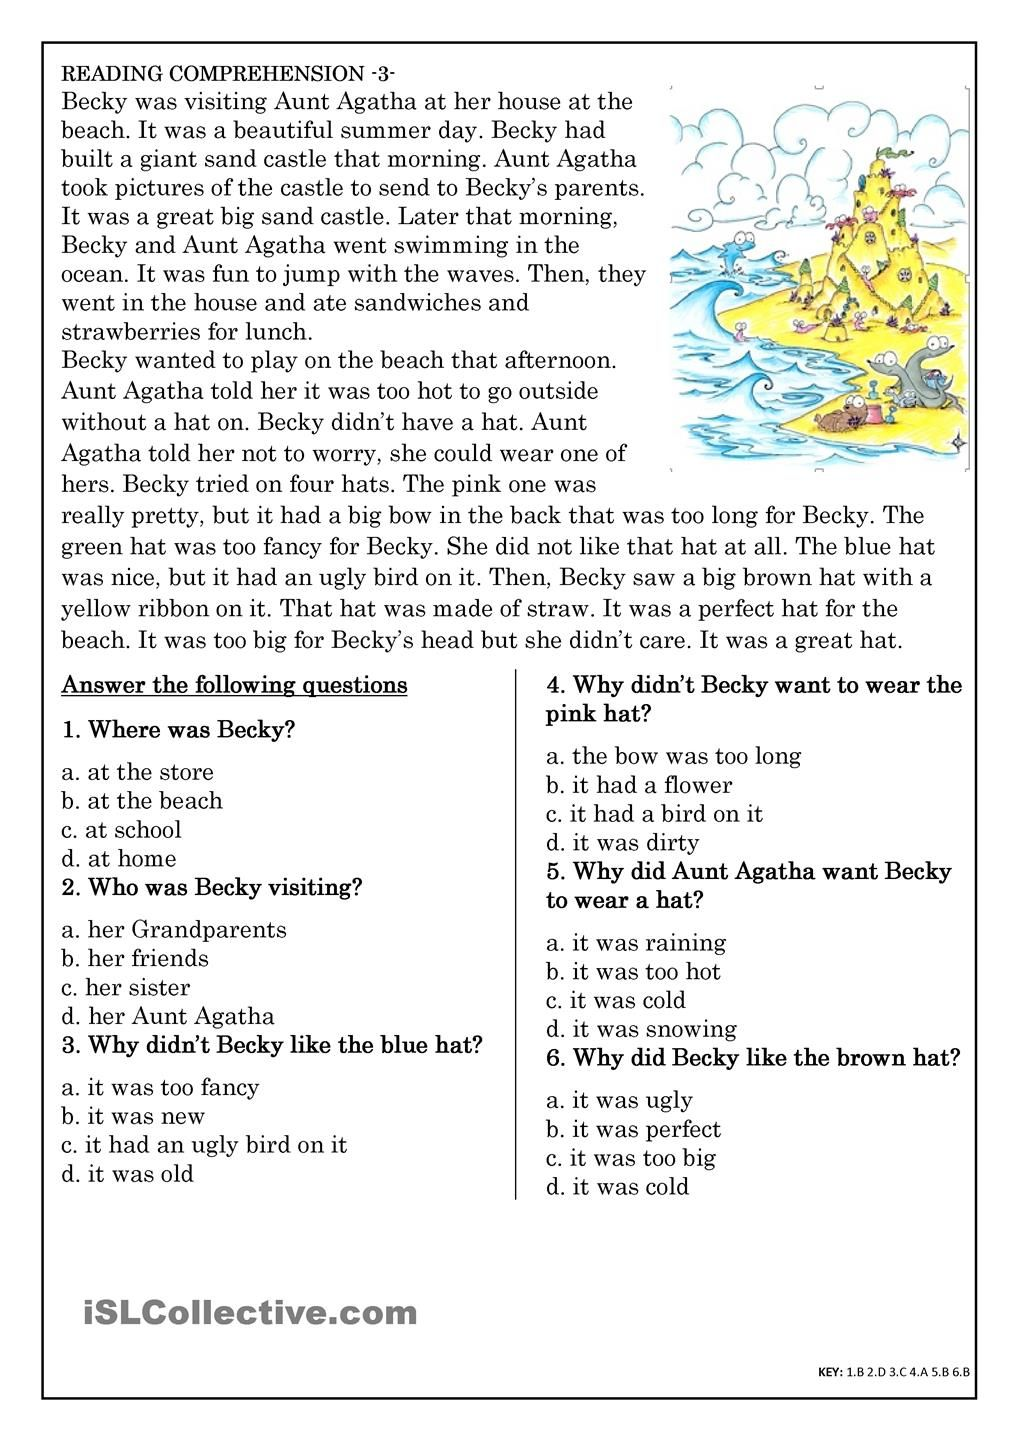 Printables College Reading Comprehension Worksheets 1000 images about ejercicios de ingles on pinterest april 20 animales and vocabulary worksheets